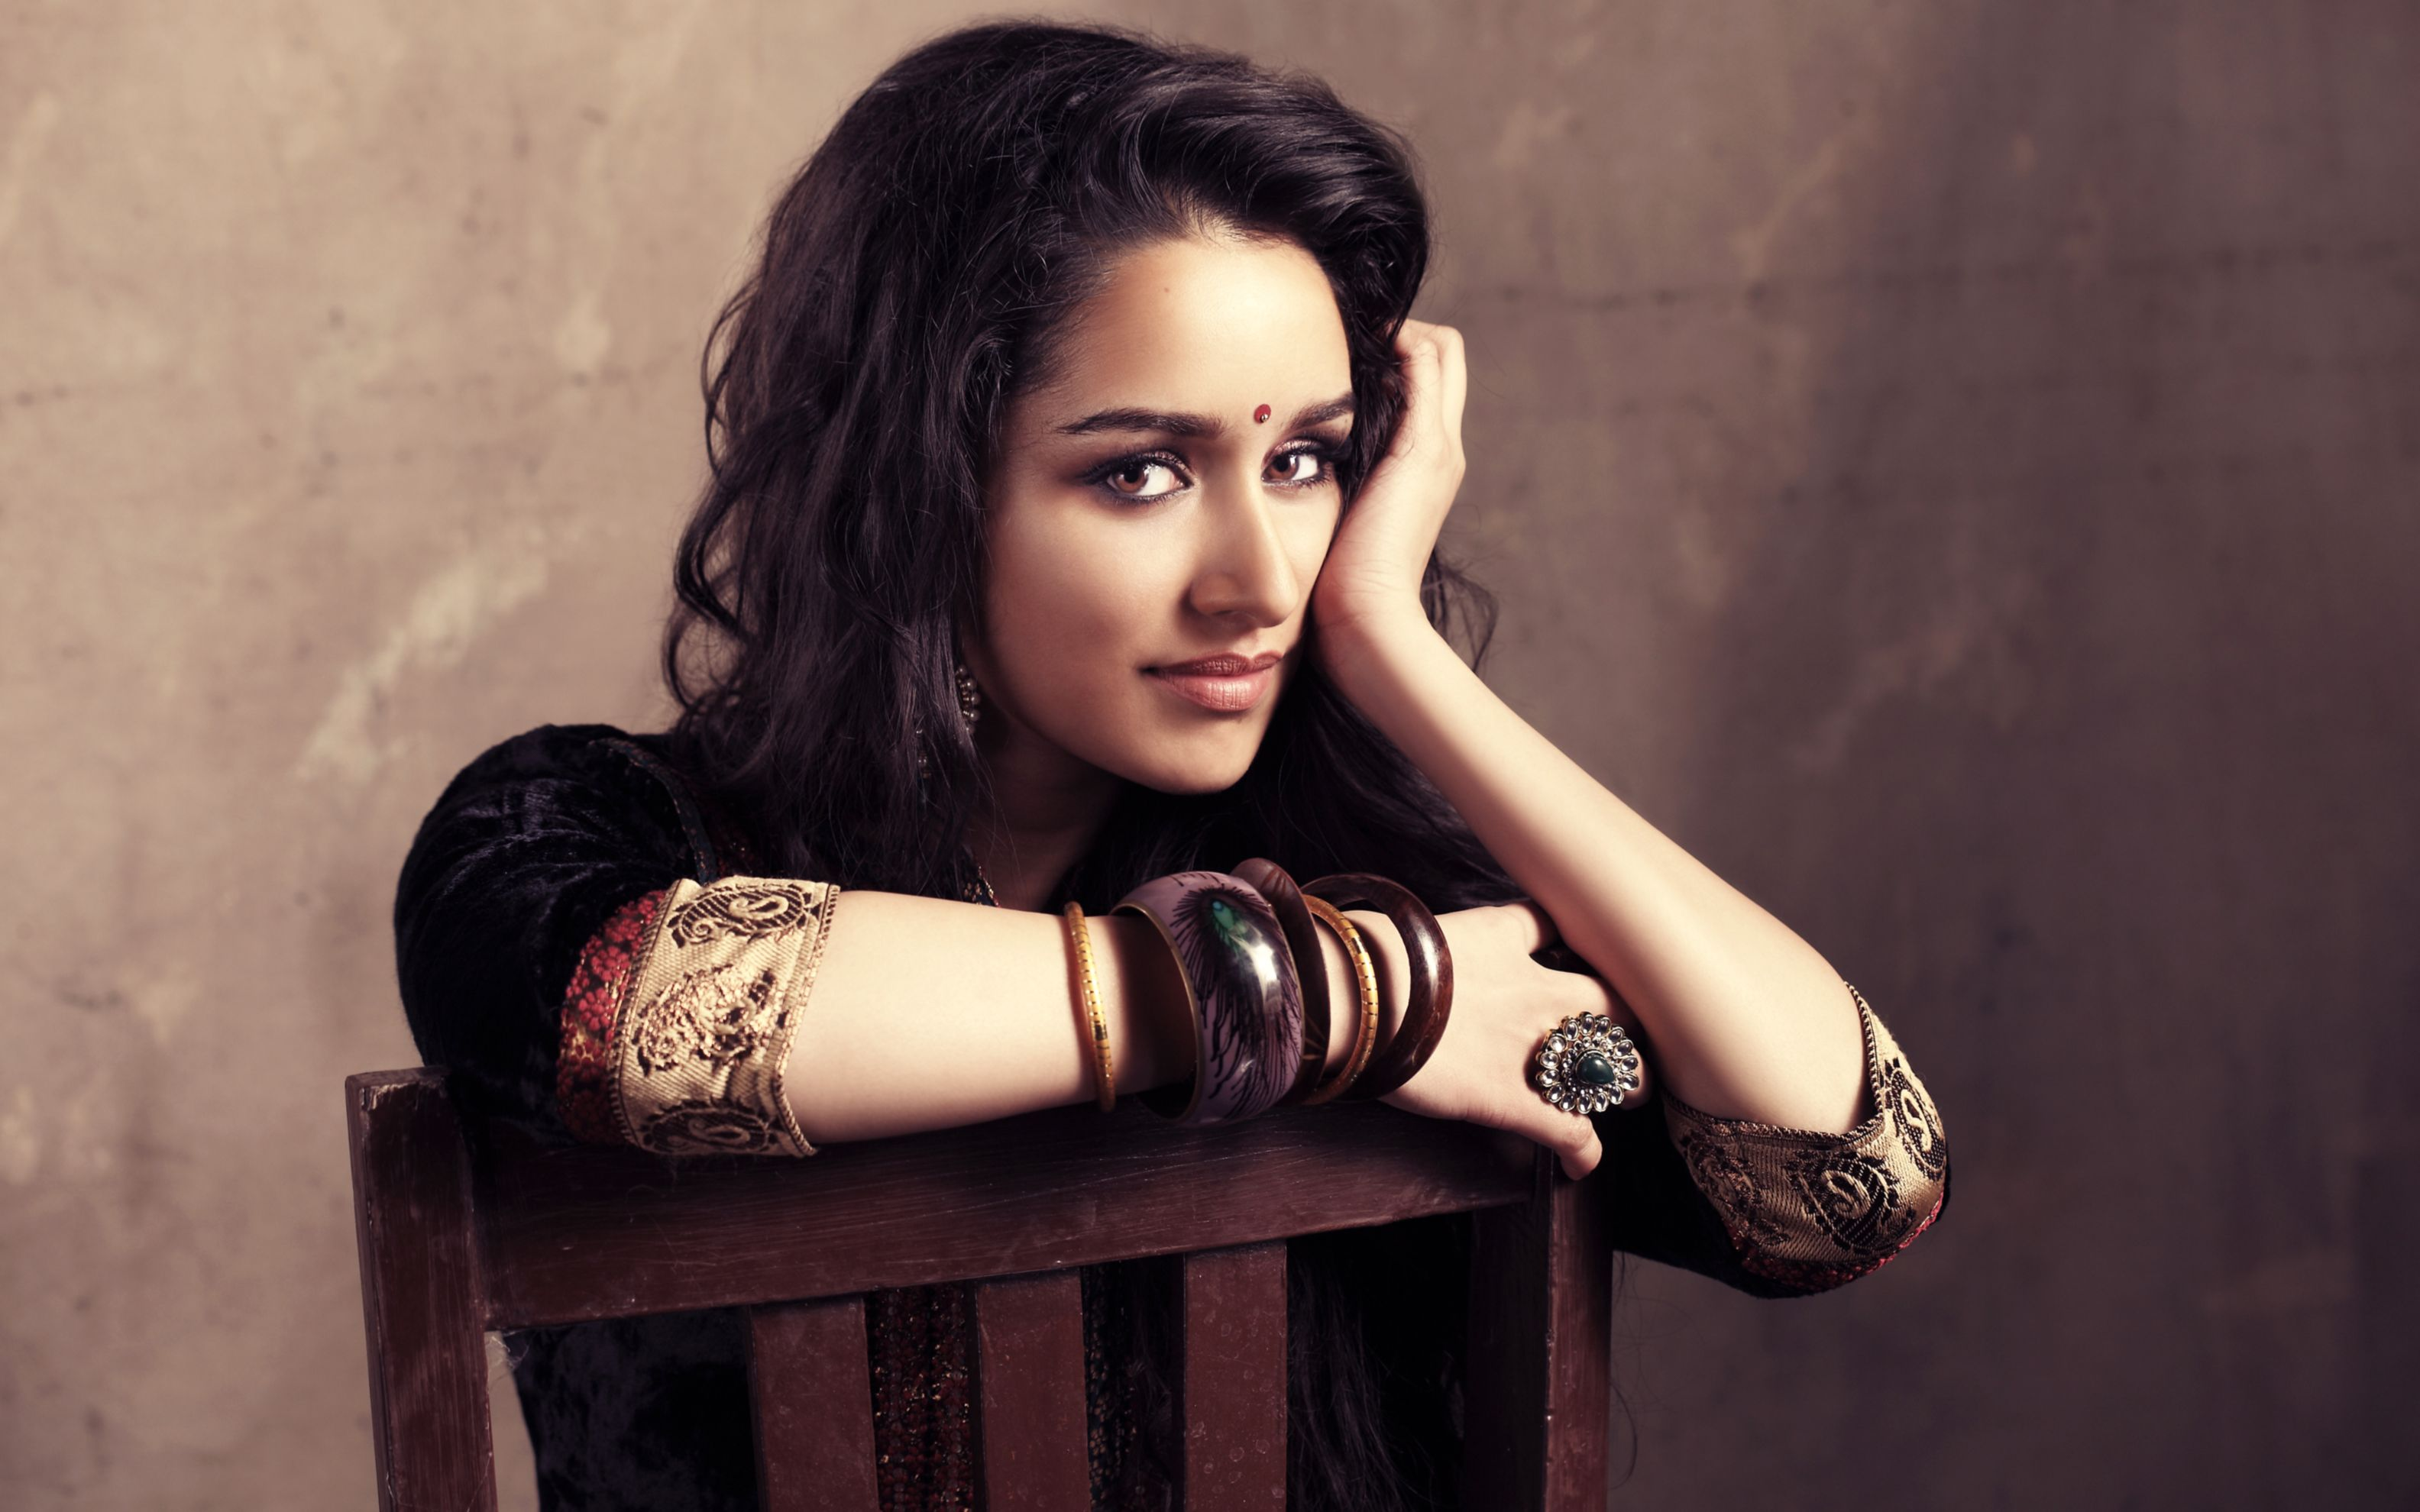 Download free HD Shraddha Kapoor Wide Wallpaper, image